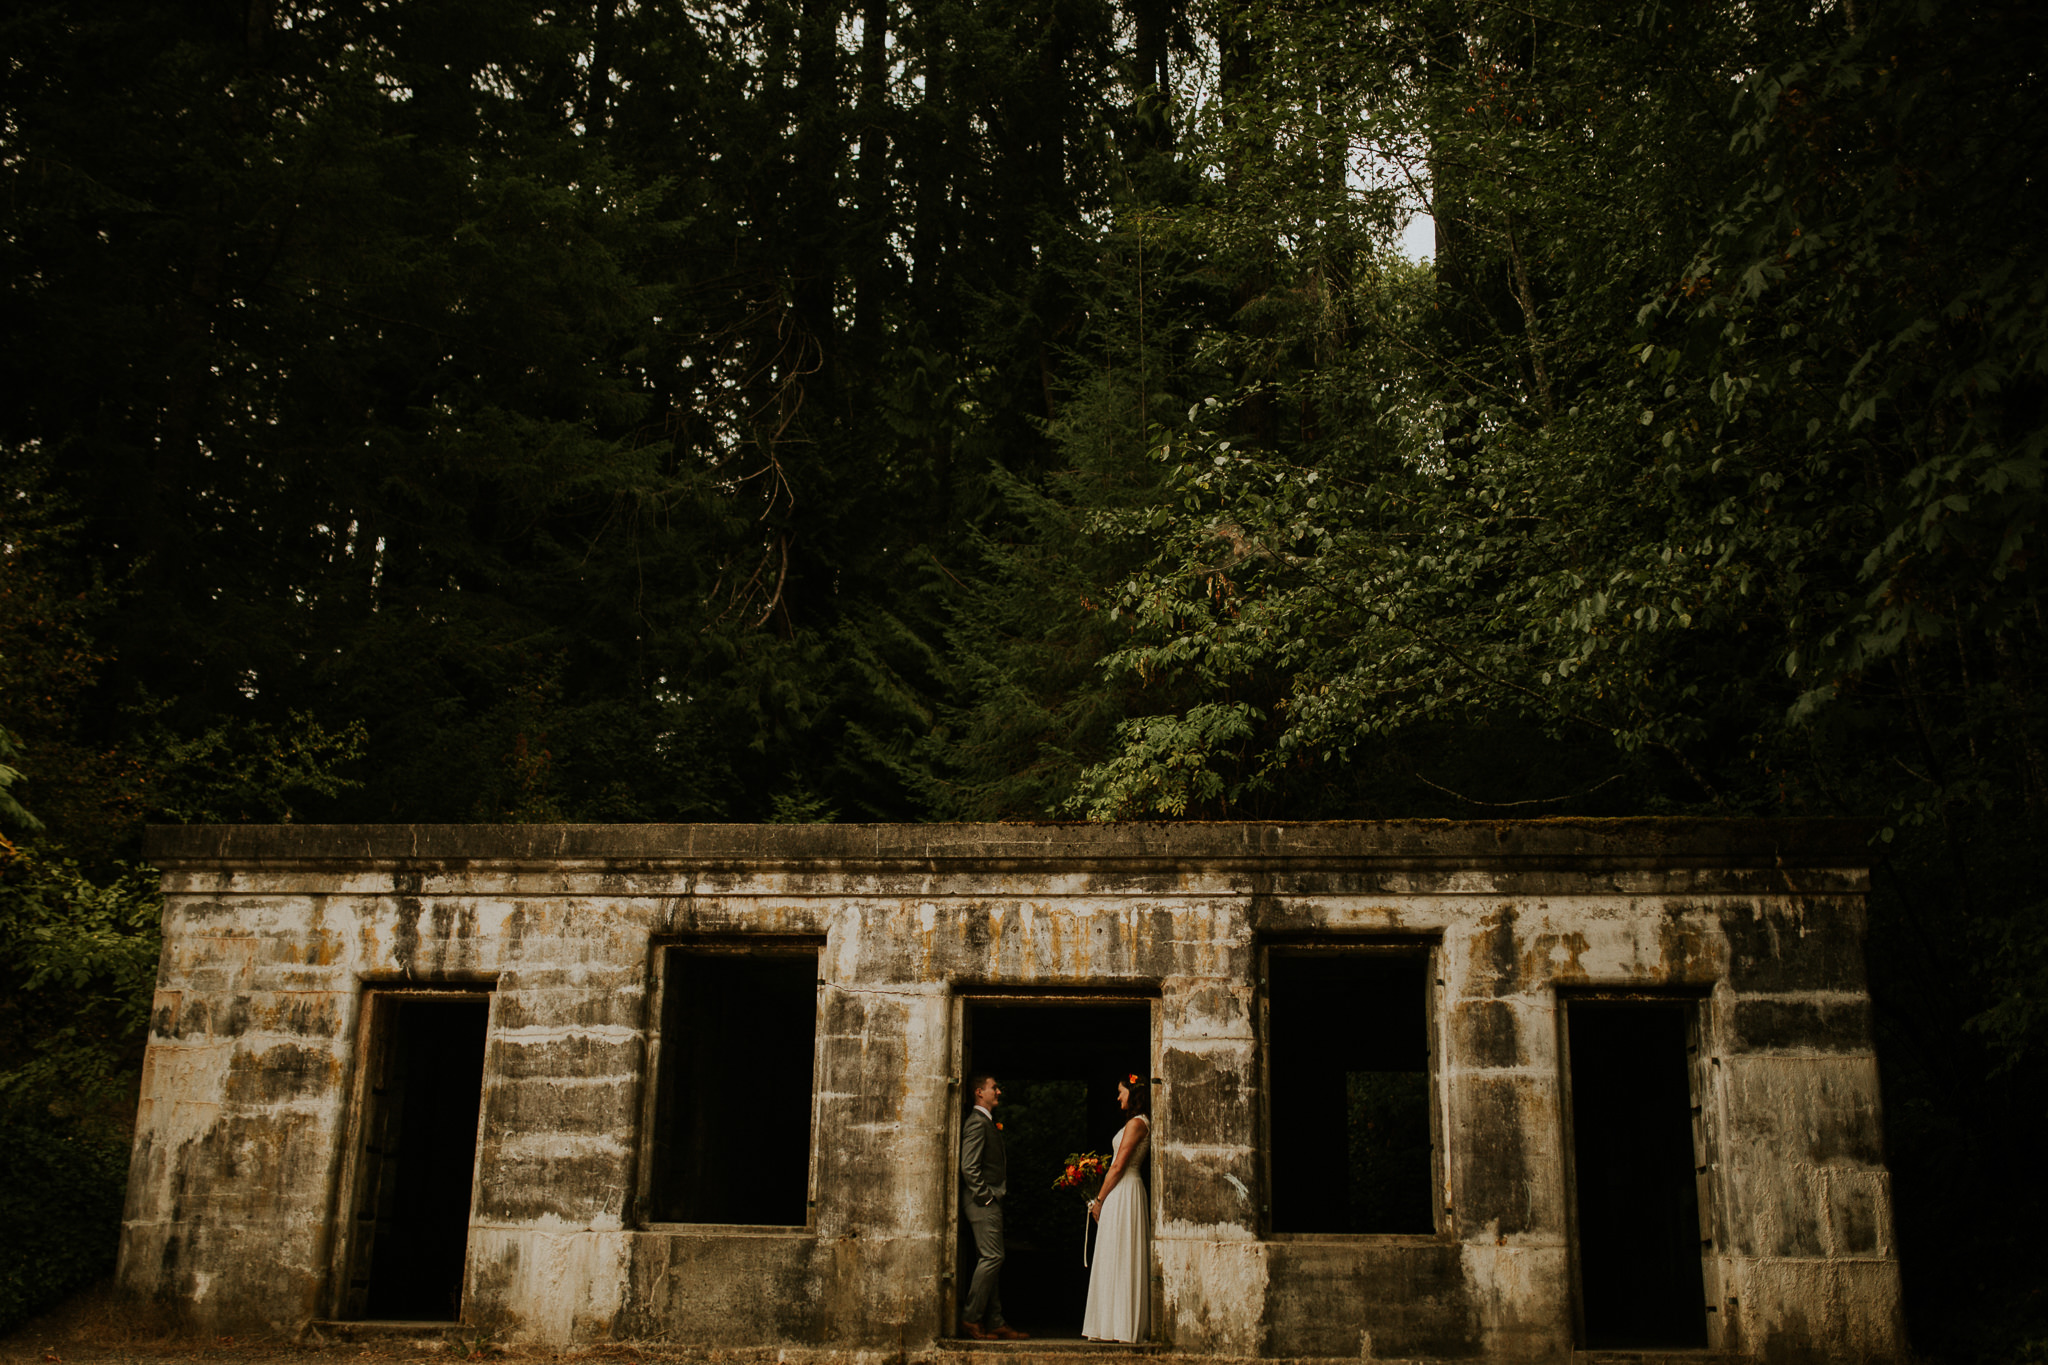 Port-Orchard-Manchester-Park-elopement-Bride-And-Groom-197.jpg